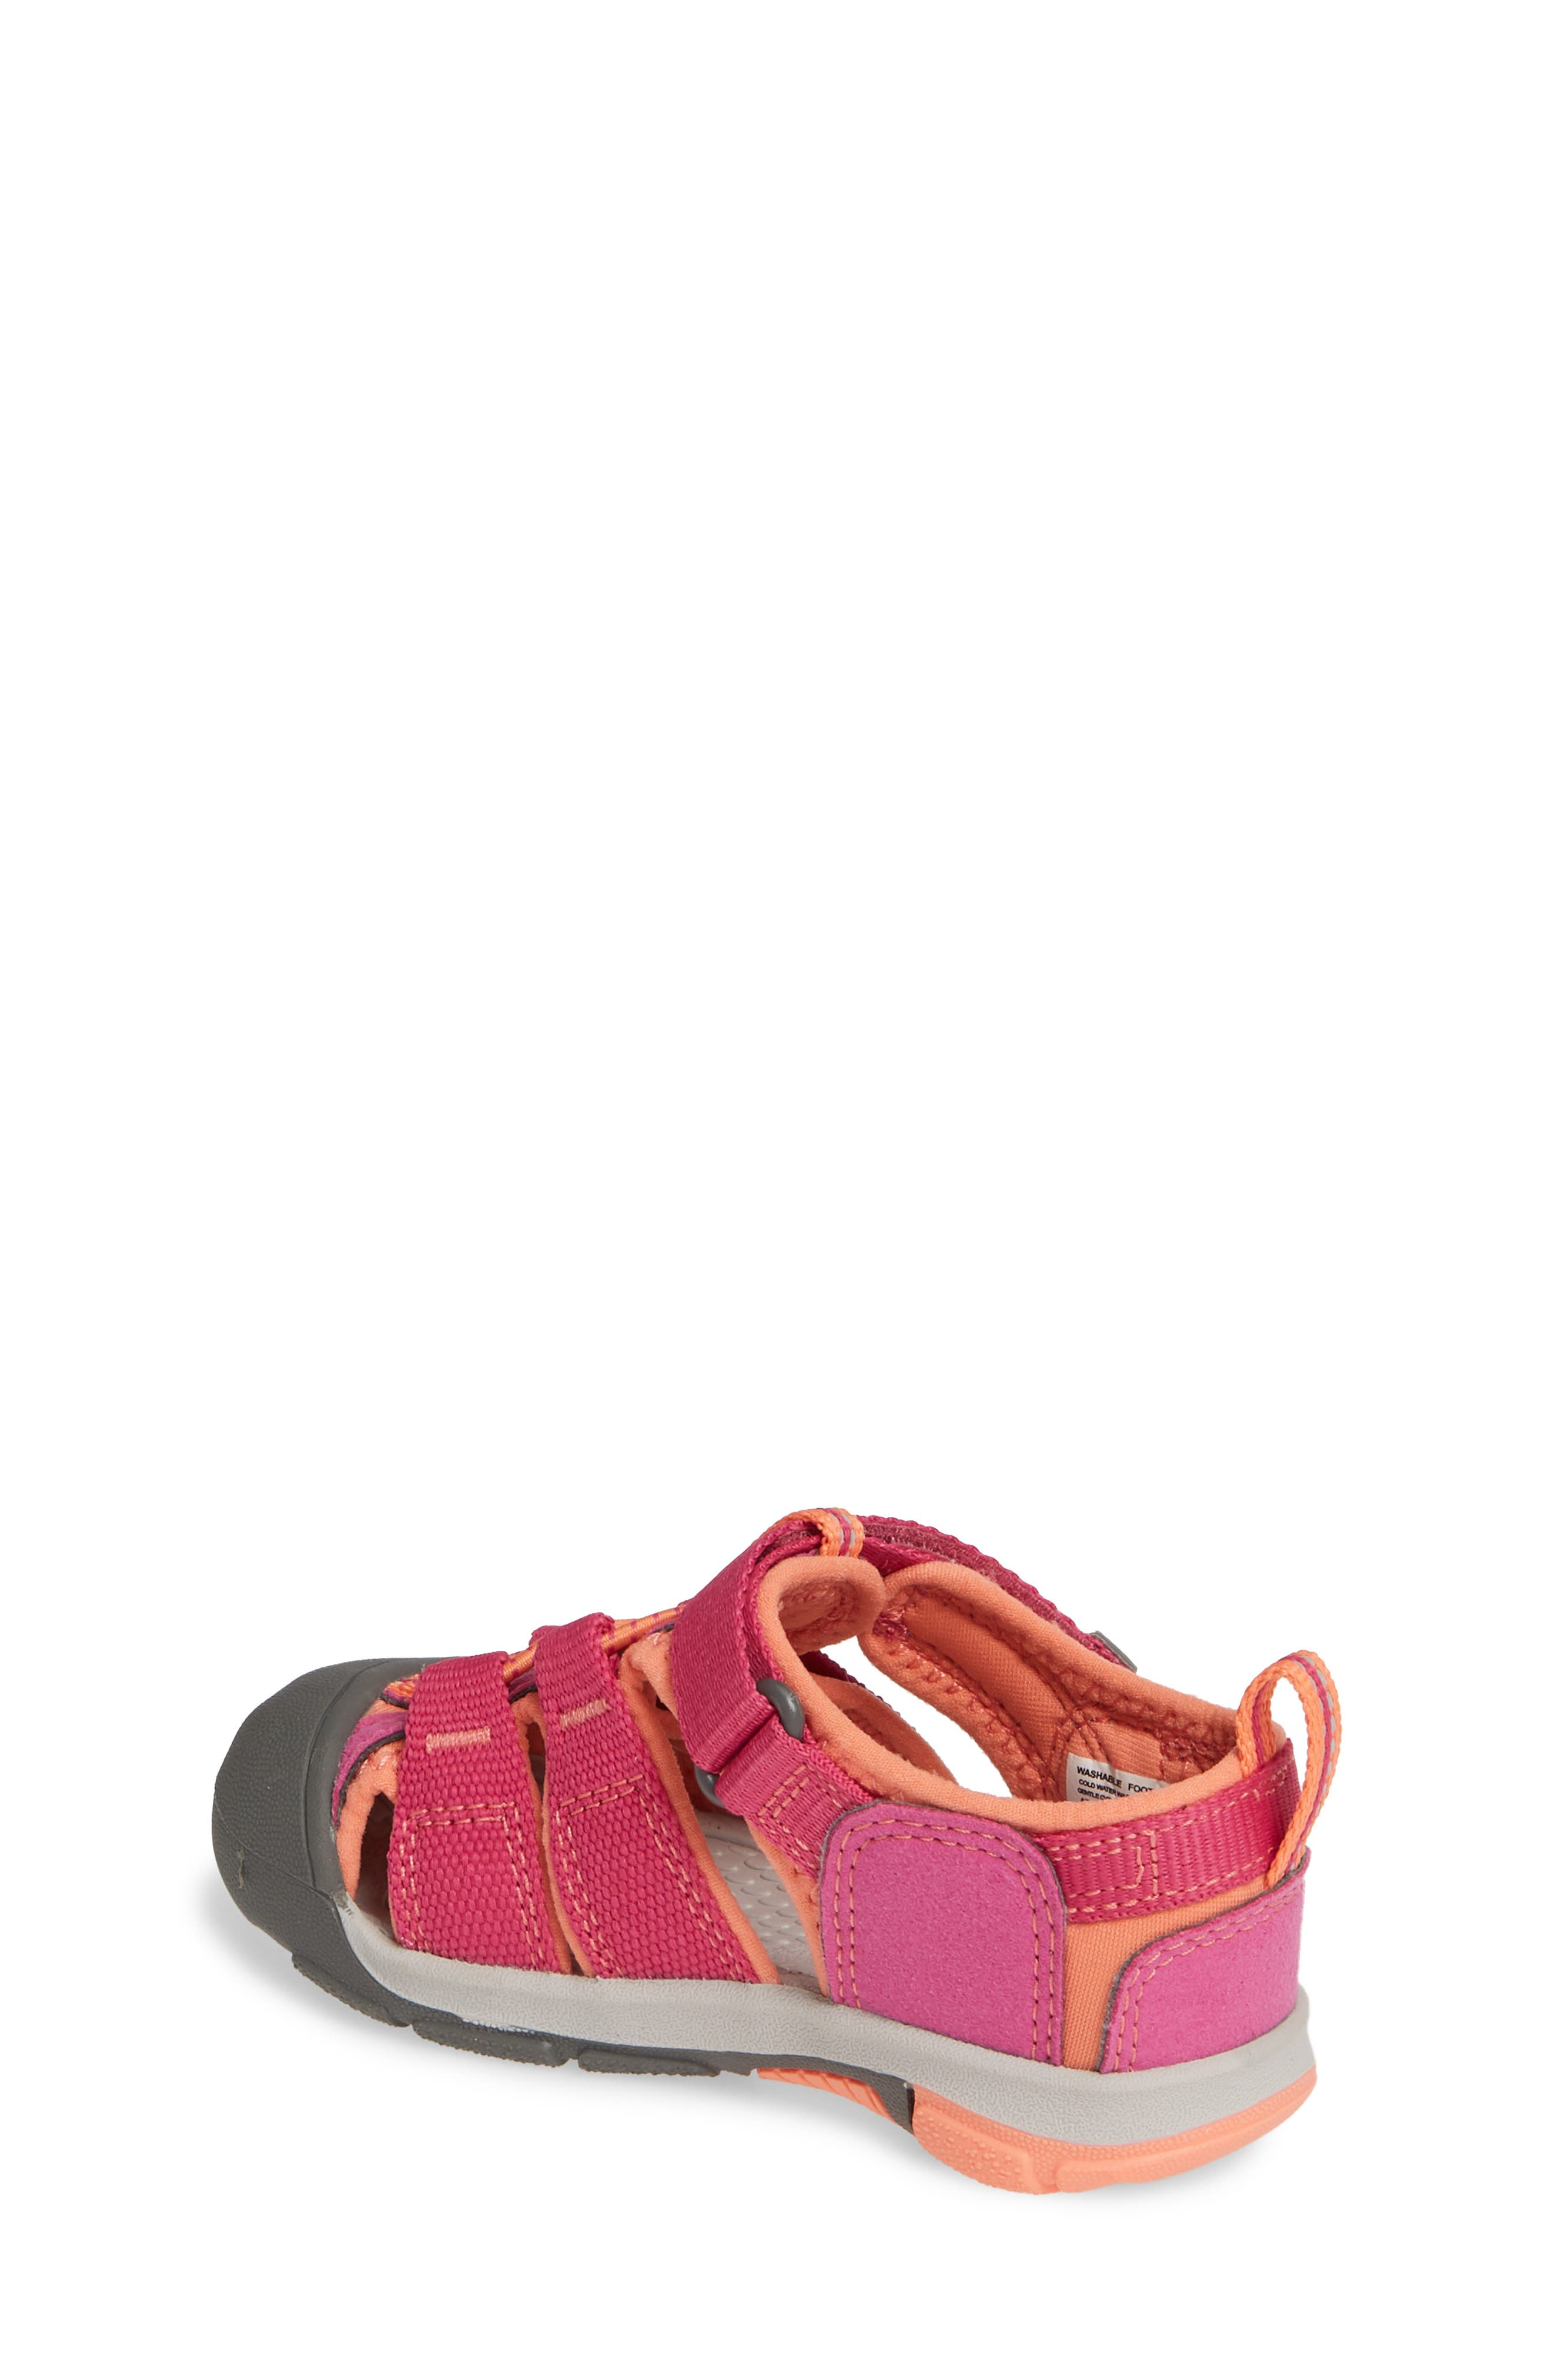 ,                             'Newport H2' Water Friendly Sandal,                             Alternate thumbnail 146, color,                             655